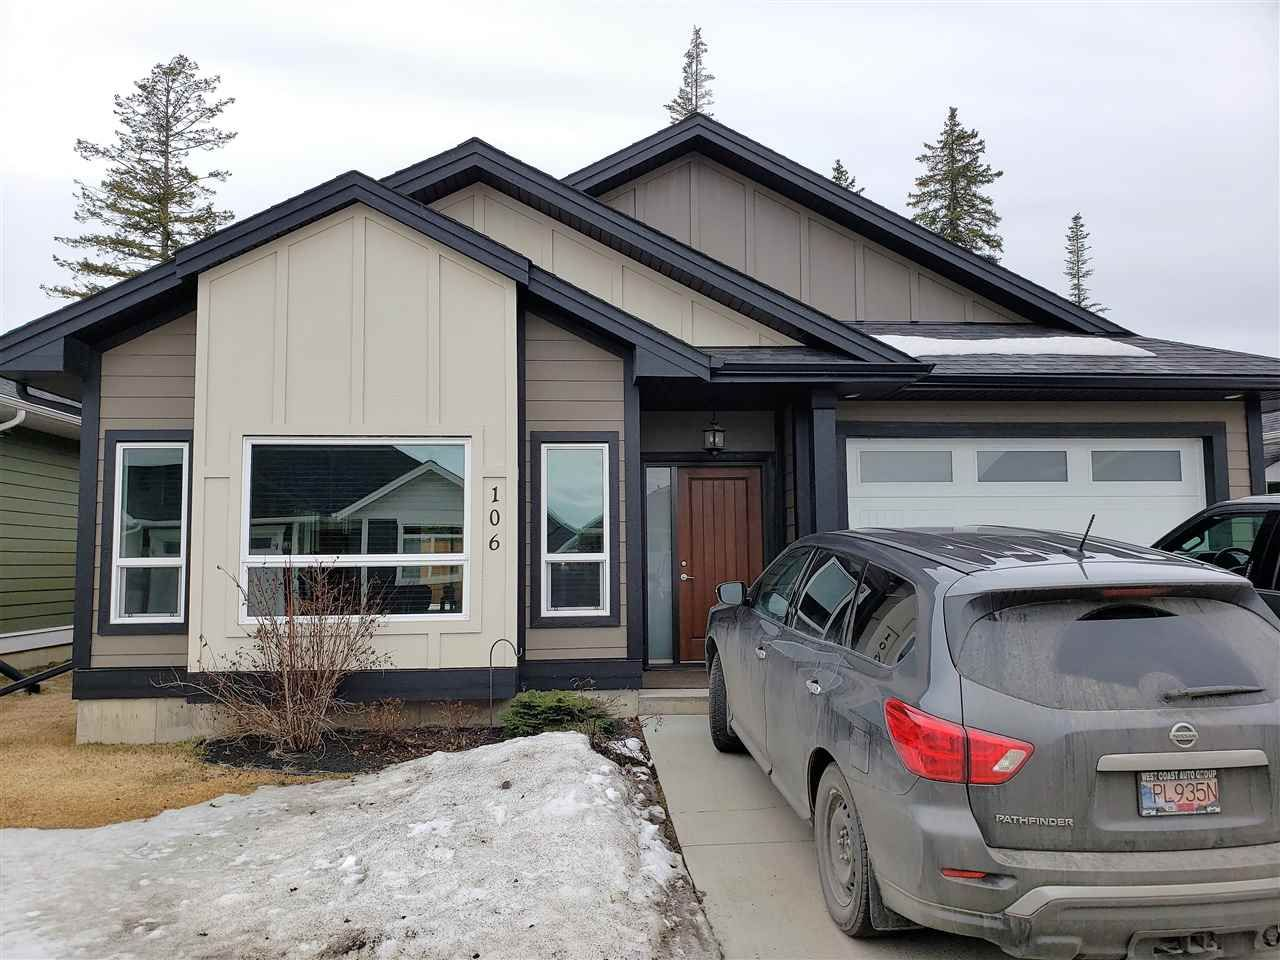 Main Photo: 106 4303 UNIVERSITY HEIGHTS Drive in Prince George: Charella/Starlane House for sale (PG City South (Zone 74))  : MLS®# R2561893